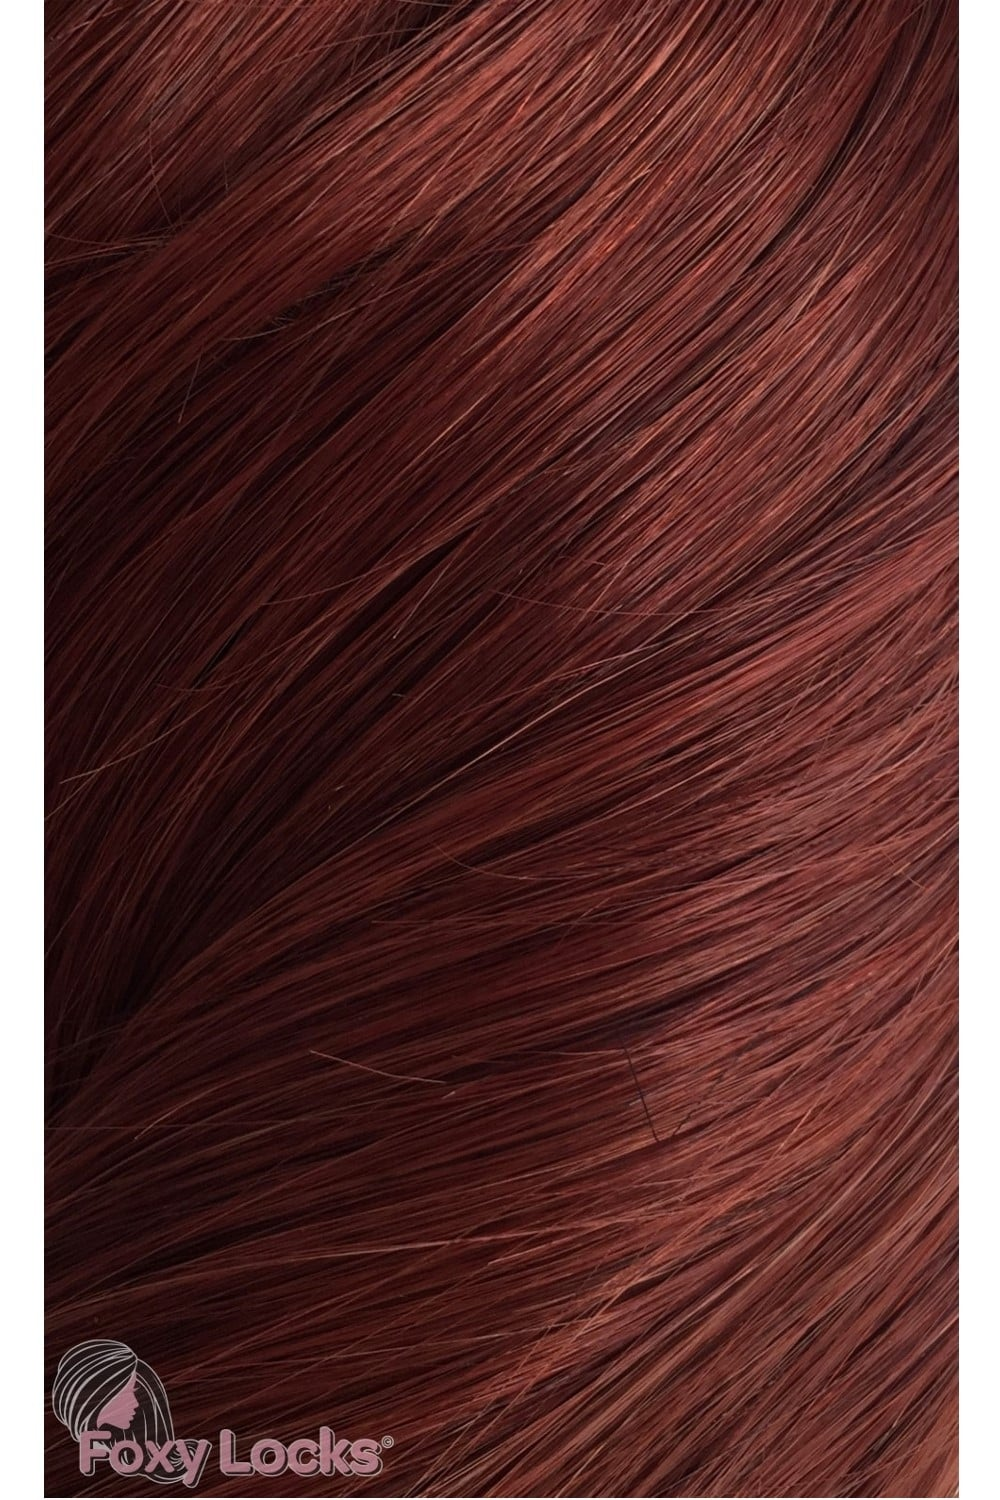 Mahogany Red 33 Deluxe 20 Clip In Human Hair Extensions 165g